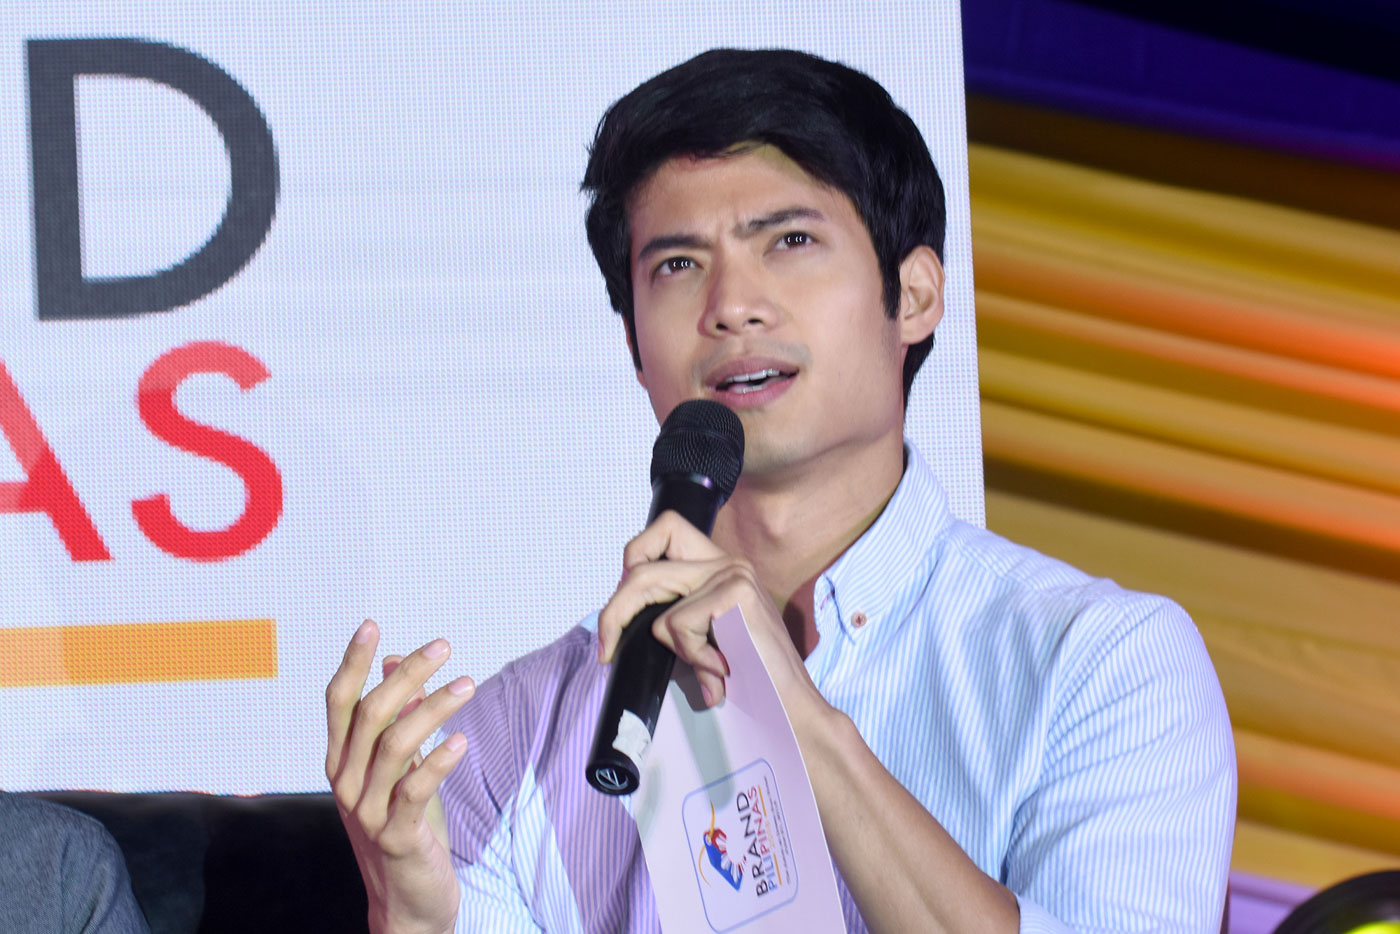 CELEBRITY GUESTS. Jasmine Curtis-Smith and Mikael Daez joined in as co-moderators for the event's last panels. Photo by Angie de Silva/Rappler